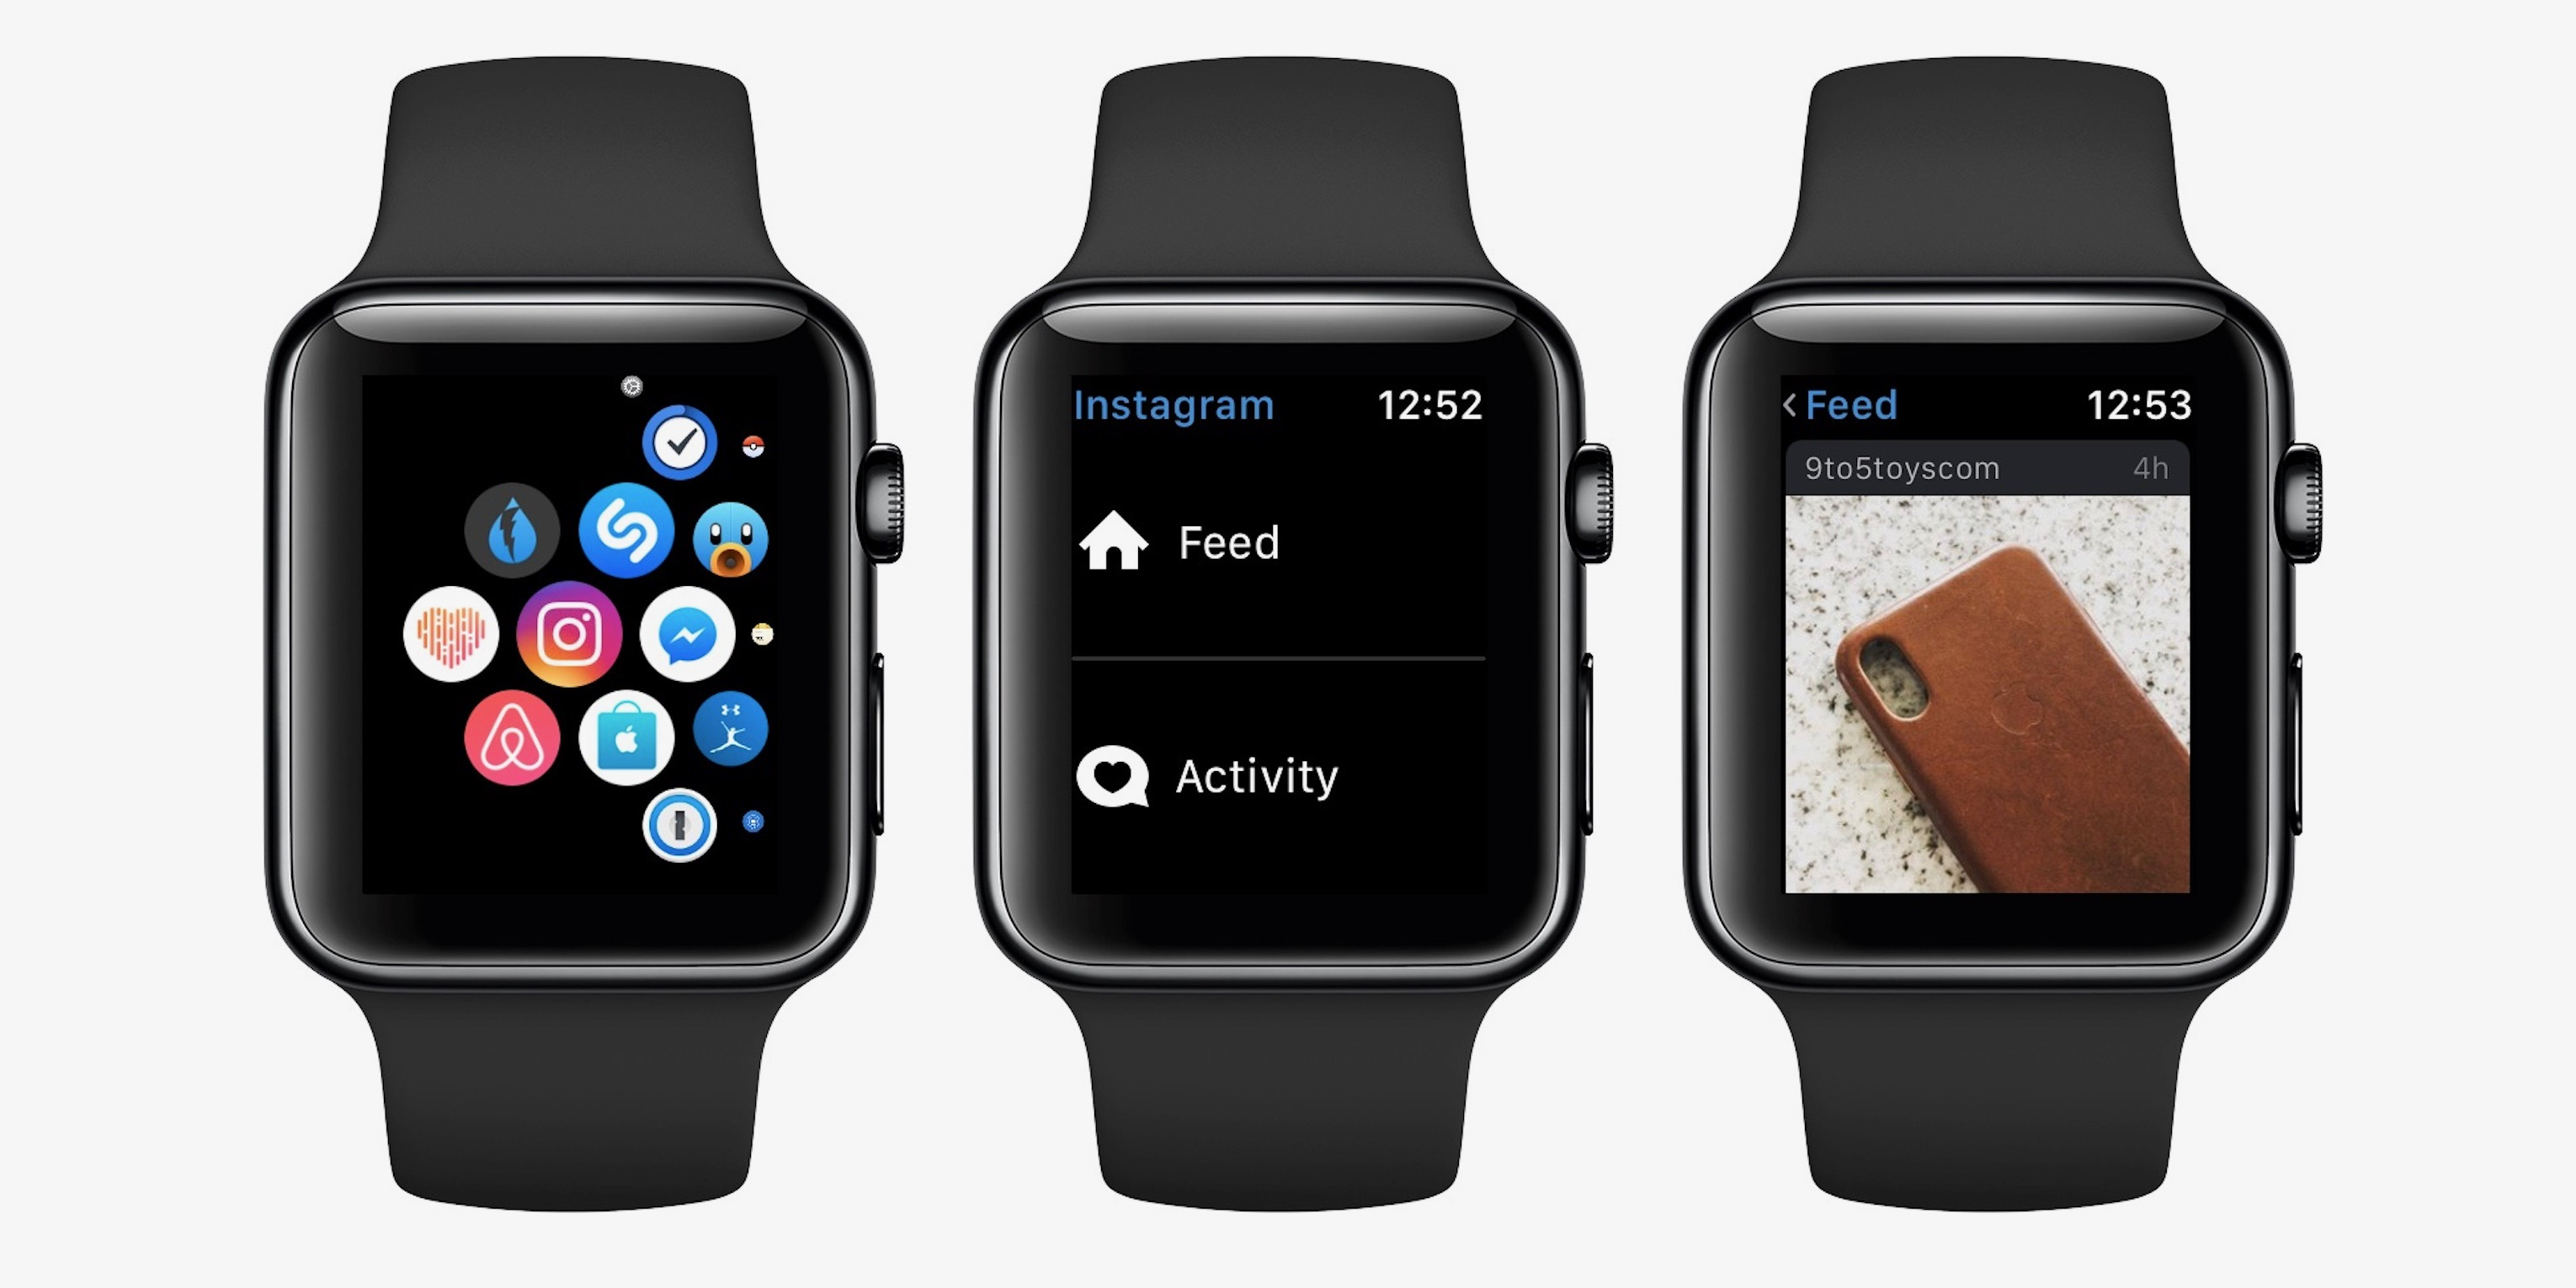 Instagram for Apple Watch killed as Apple begins requiring native apps in updates